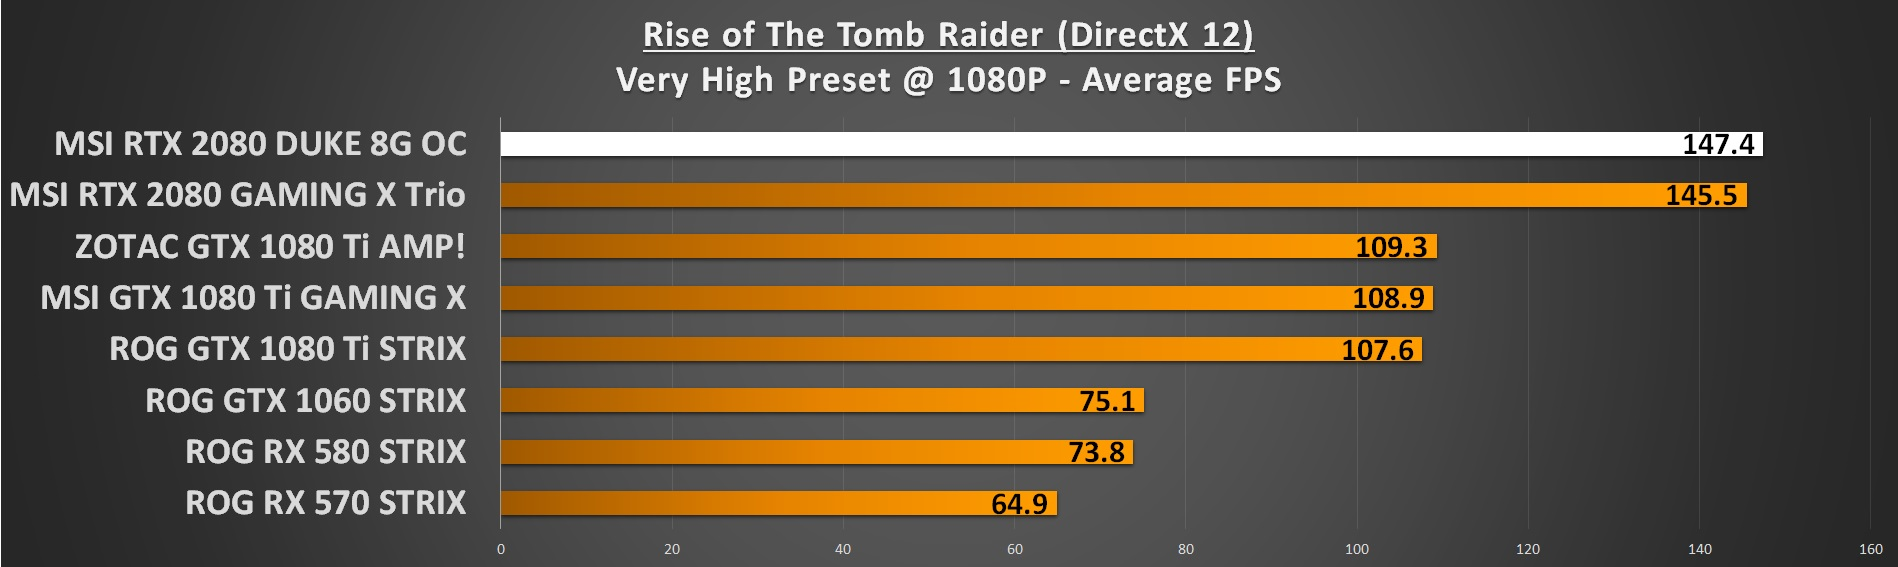 Rise of the Tomb Raider 1080p